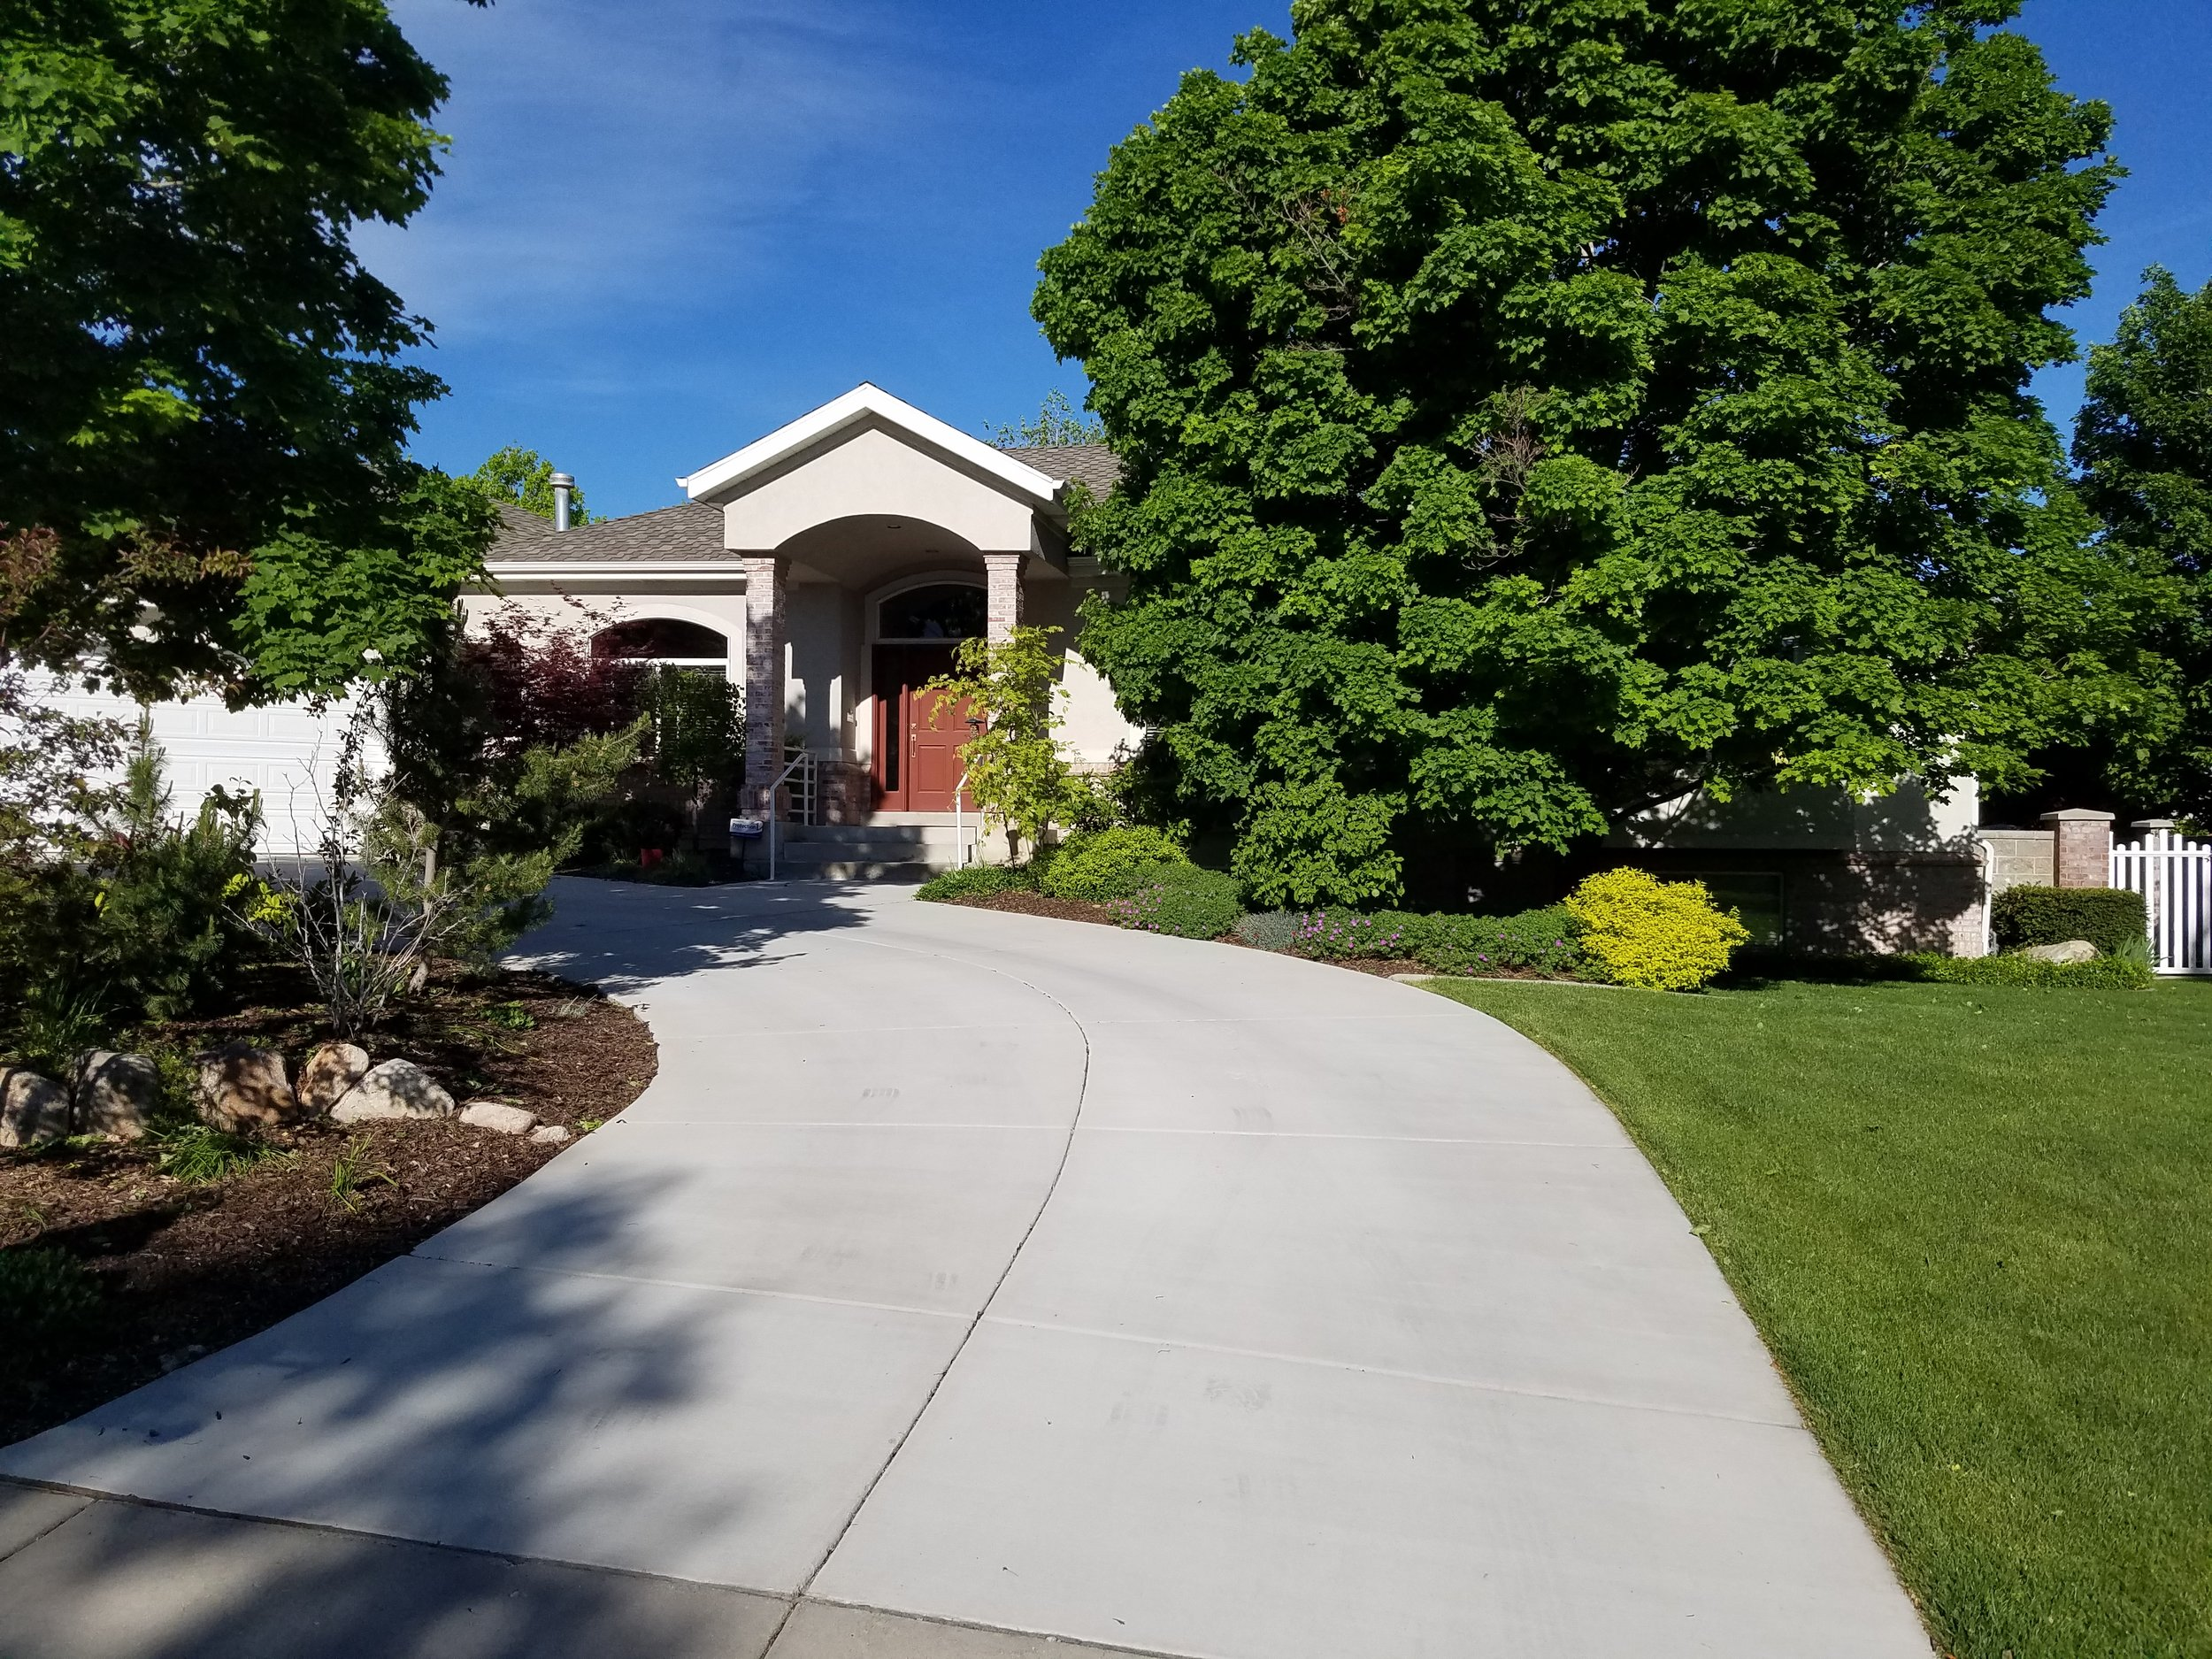 It's sunny and warm in Salt Lake City today and we're happy to be hard at work, cleaning windows.  Call Morning Star Window Cleaning today for a free estimate! We'll get you on the schedule for window cleaning, screen and rain gutter cleaning or new construction.  (801) 943-8832